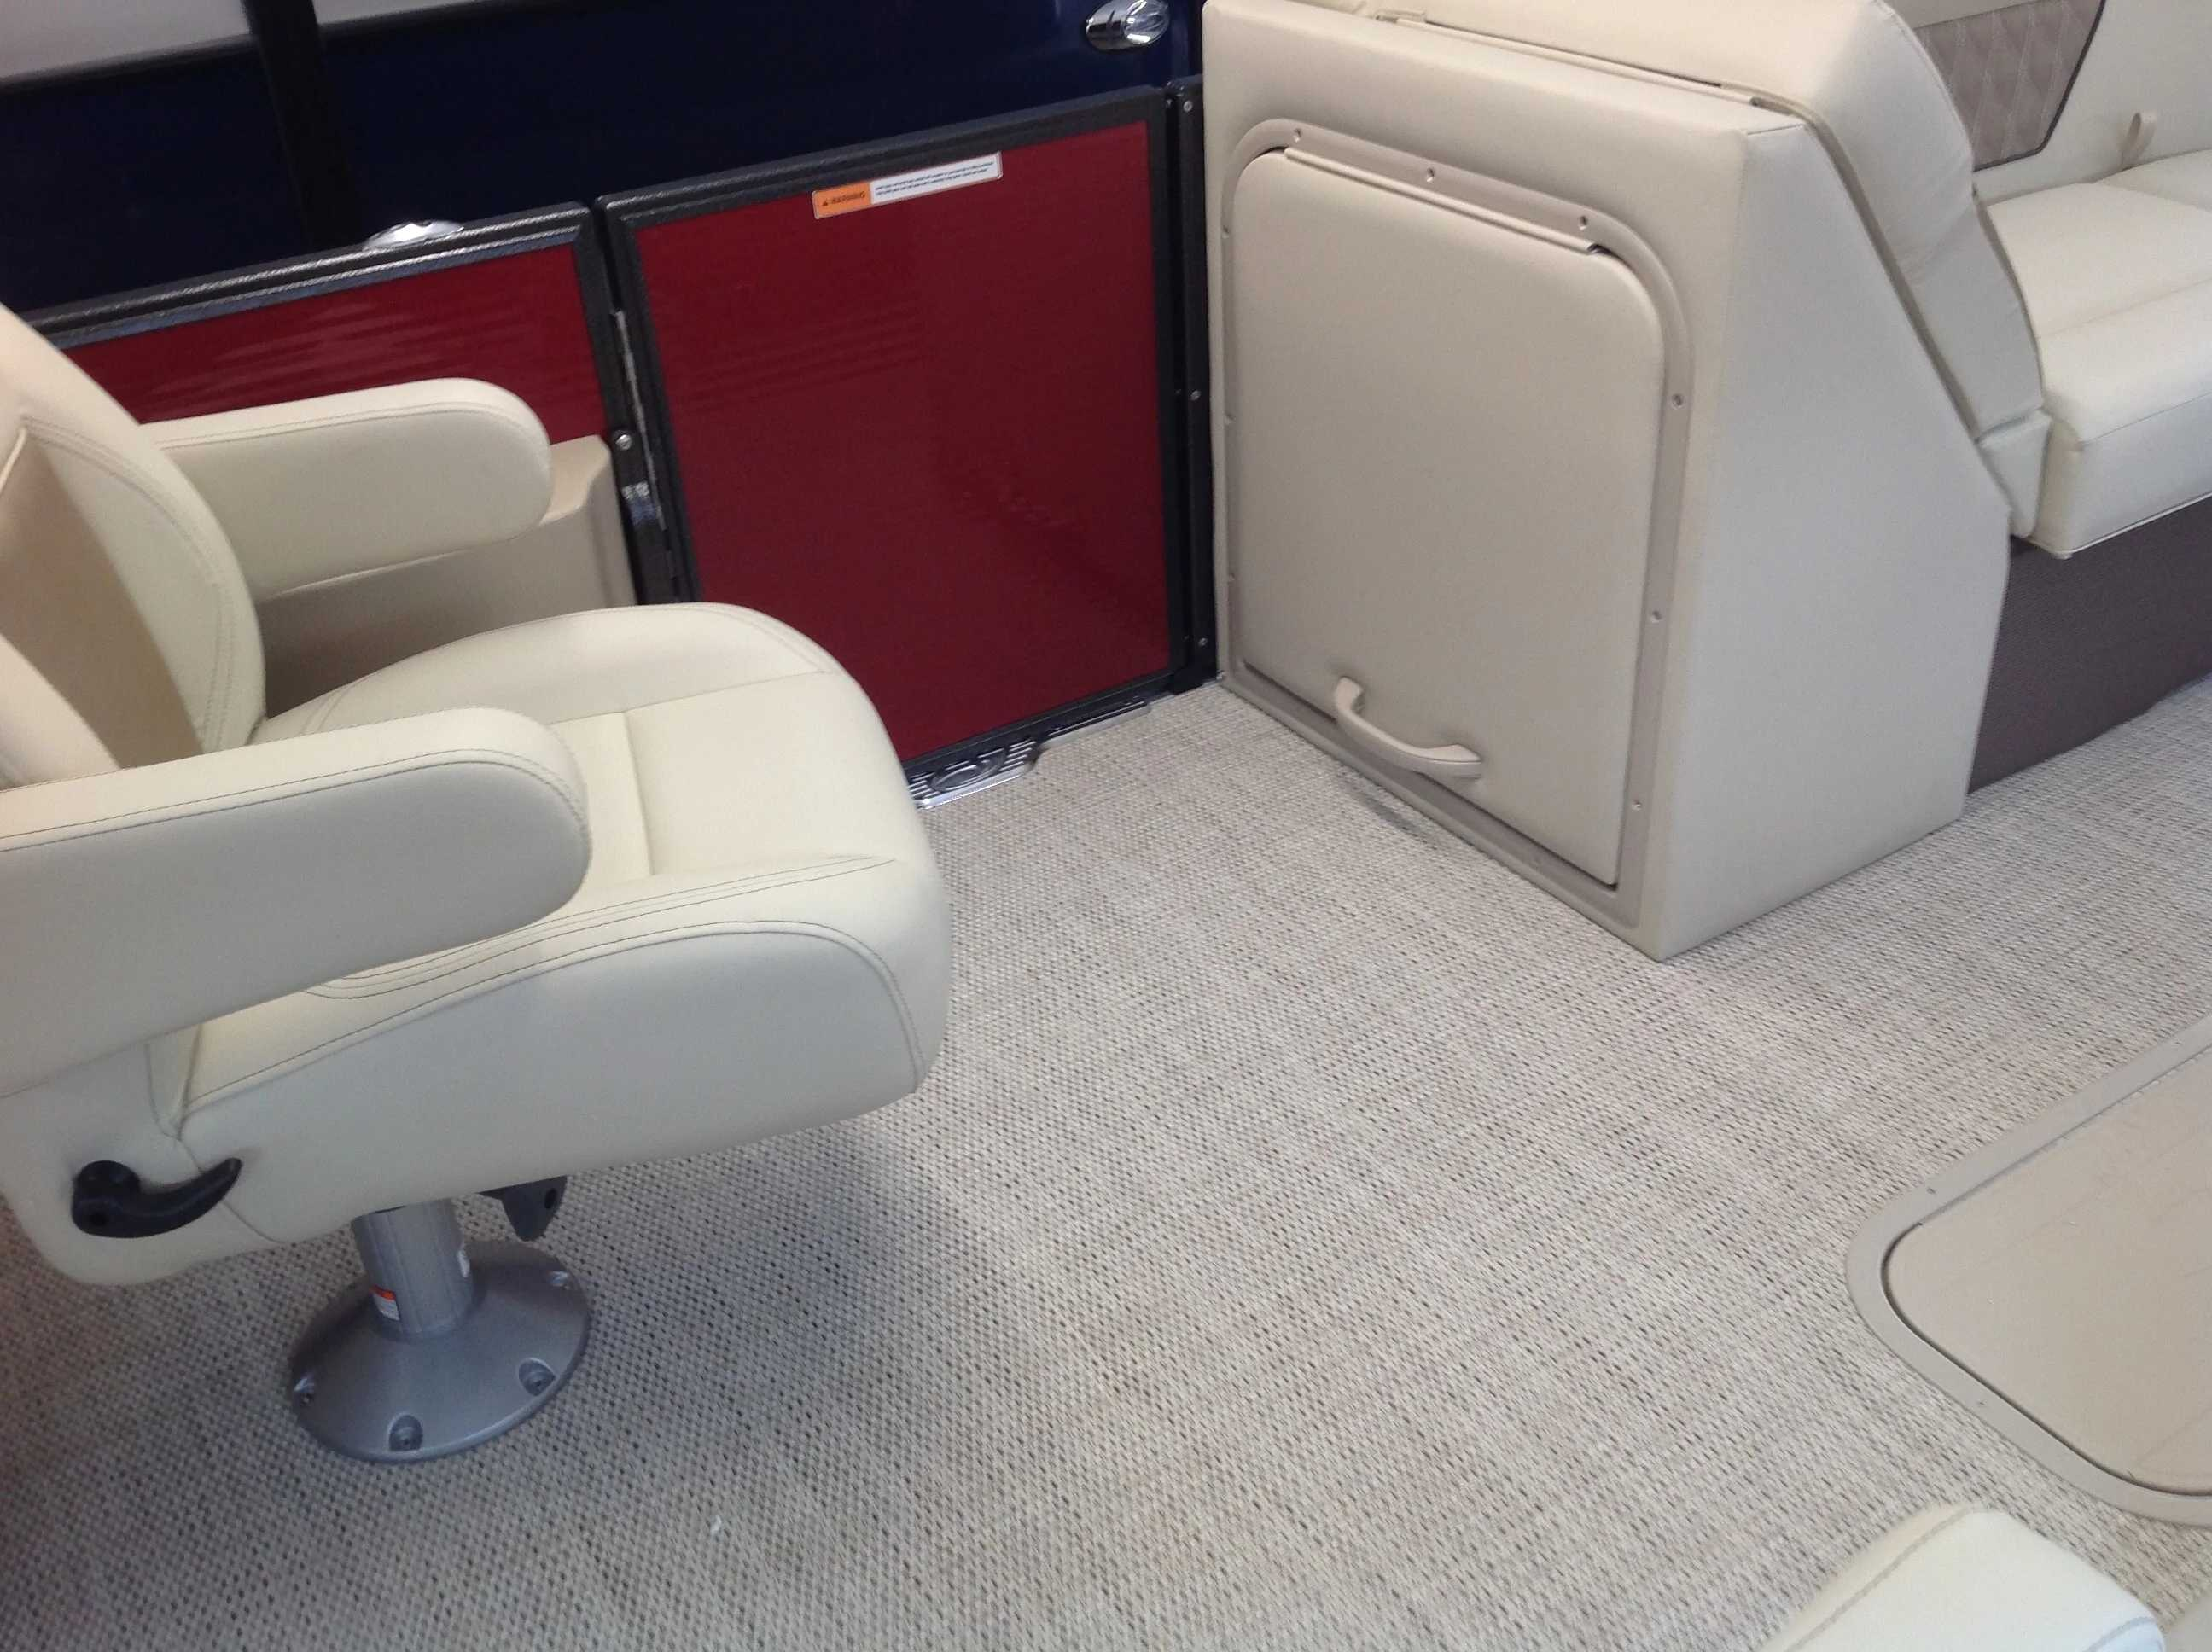 2021 Crest boat for sale, model of the boat is Cl Dlx 220slc & Image # 10 of 15